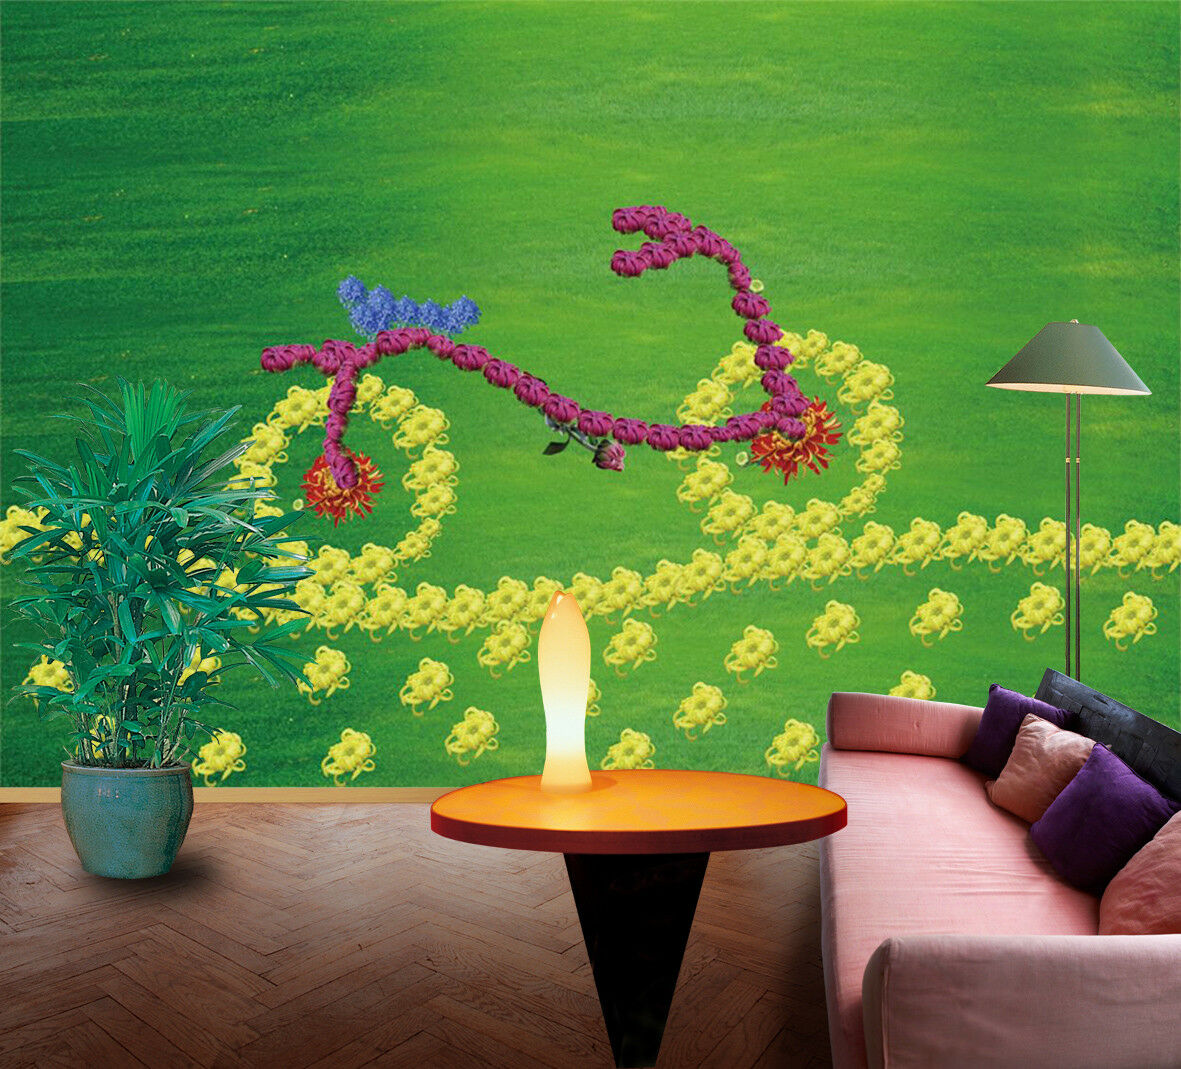 3D Grassland Bike 47 Wallpaper Murals Wall Print Wallpaper Mural AJ WALLPAPER UK